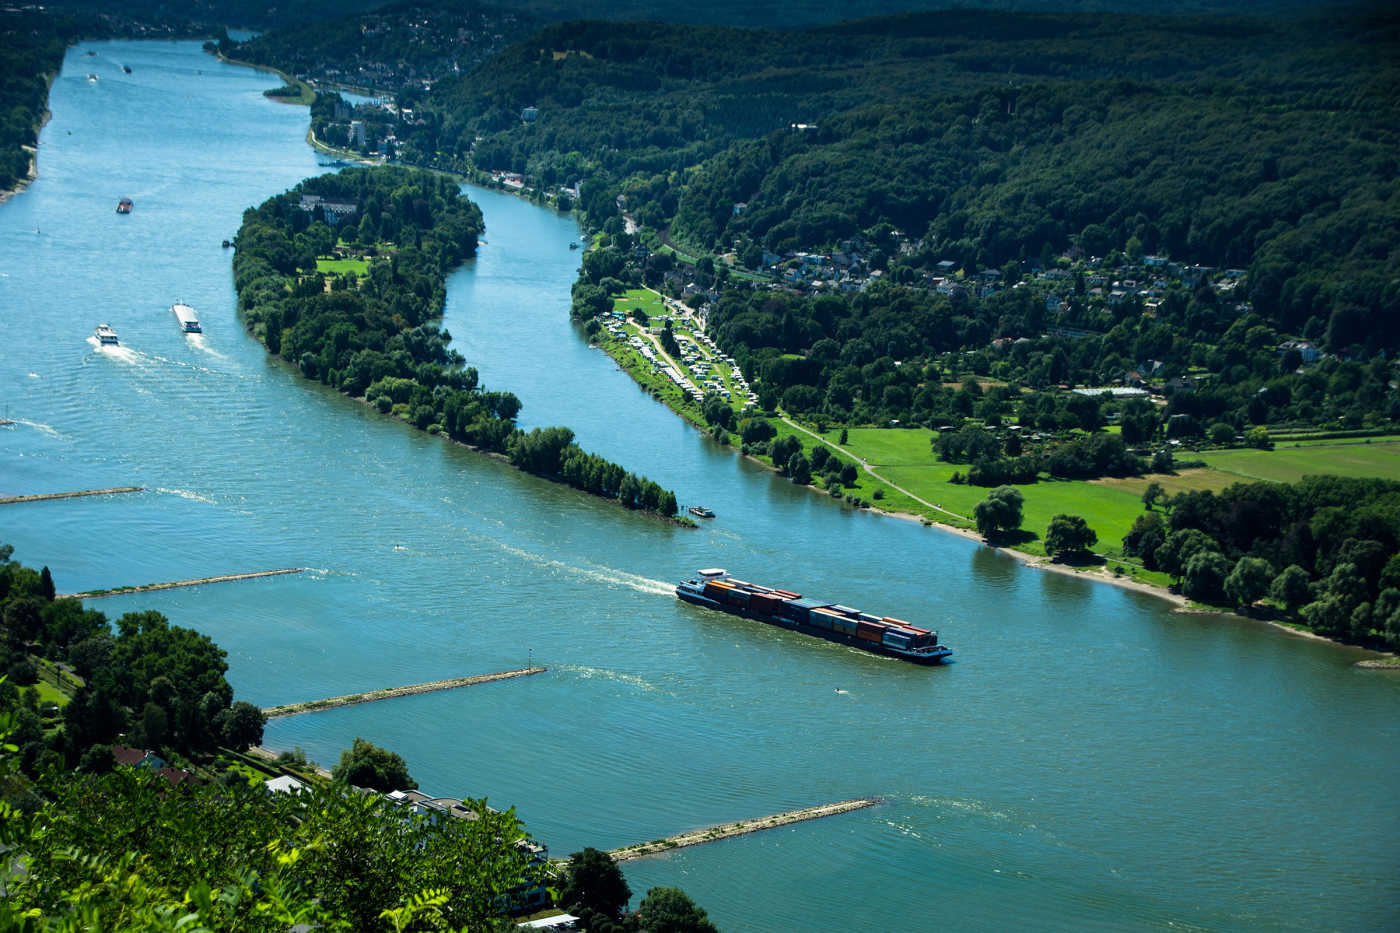 Travel To Germany And Rhine River I Visit The Amazing Rhine River - Rhine river